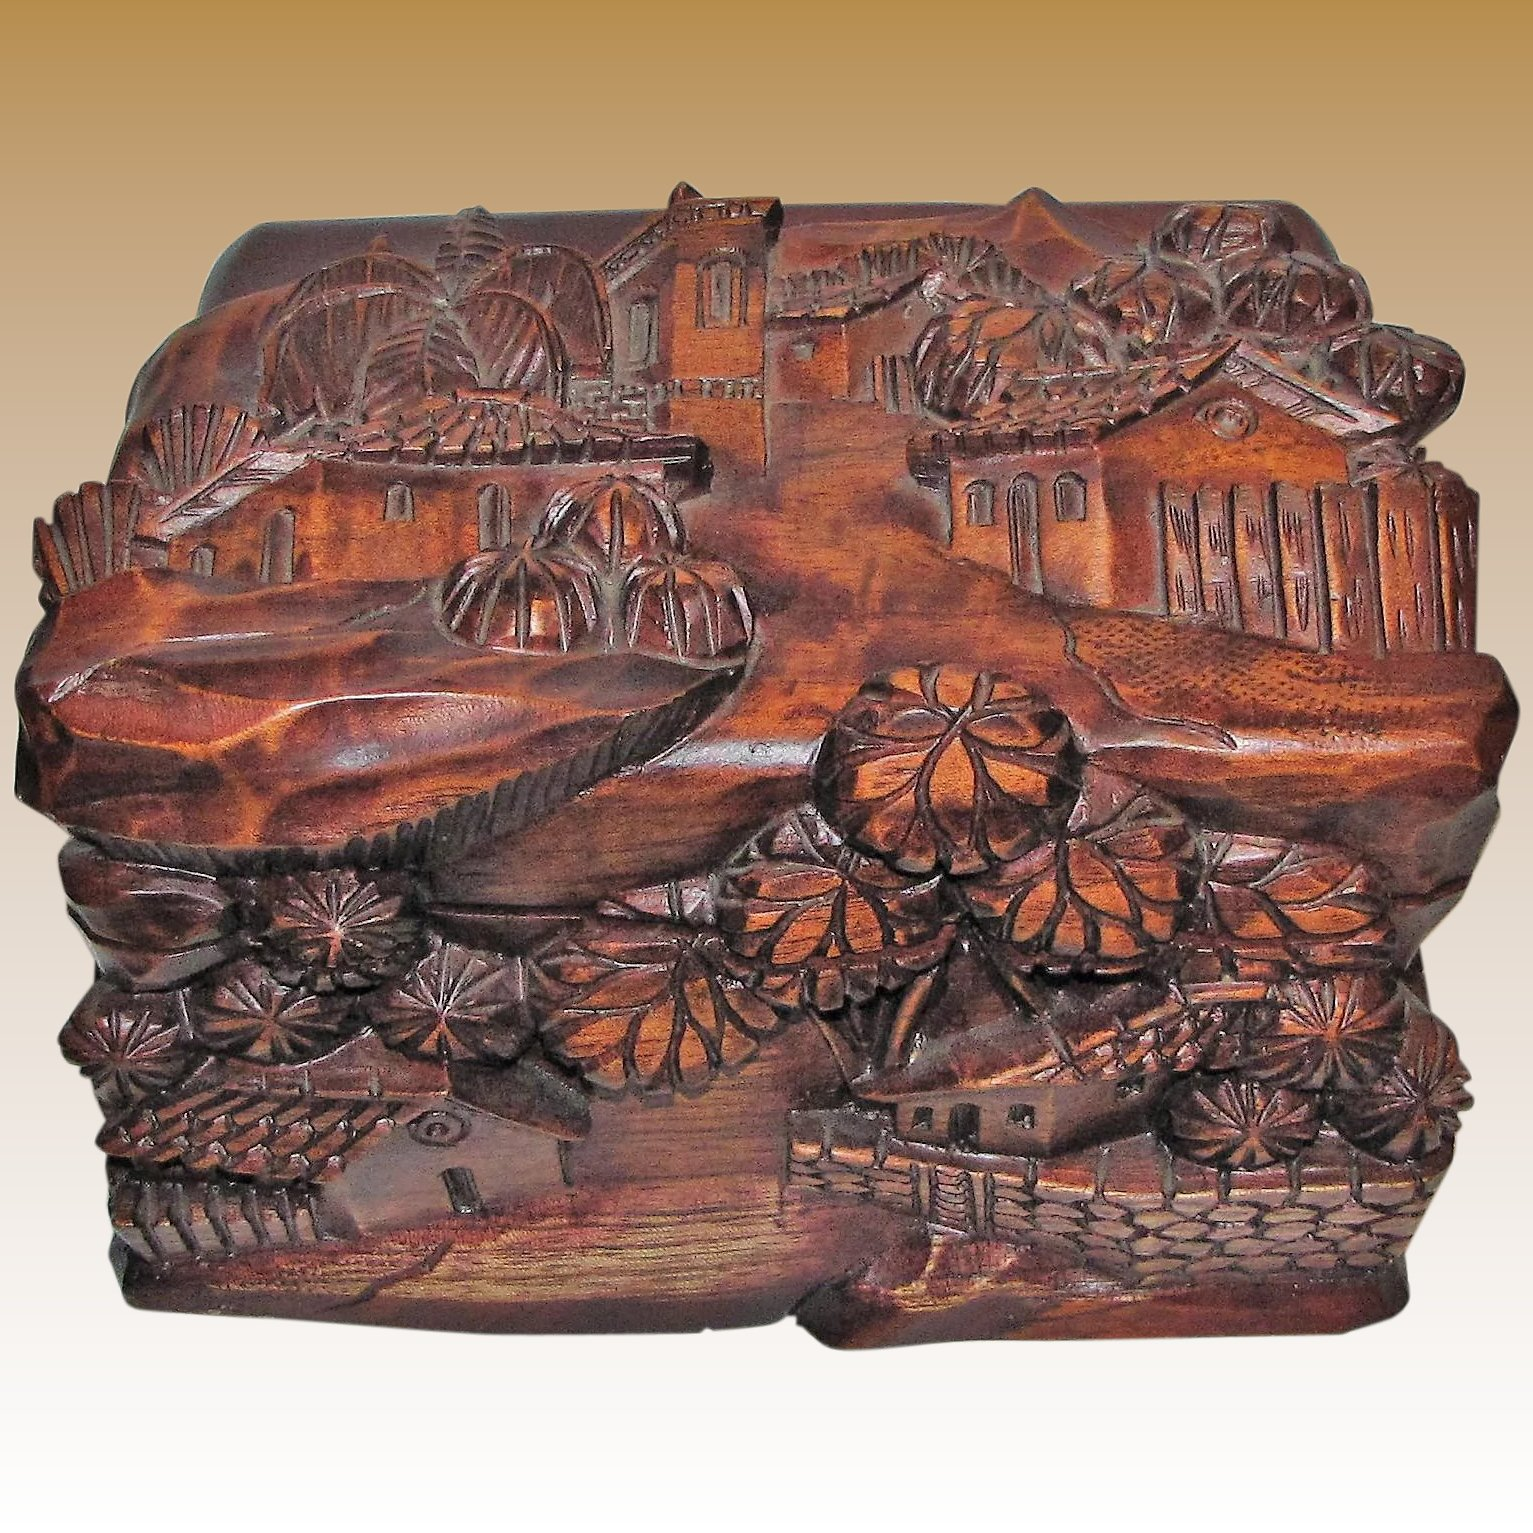 High end architectural carving done by master wood carver